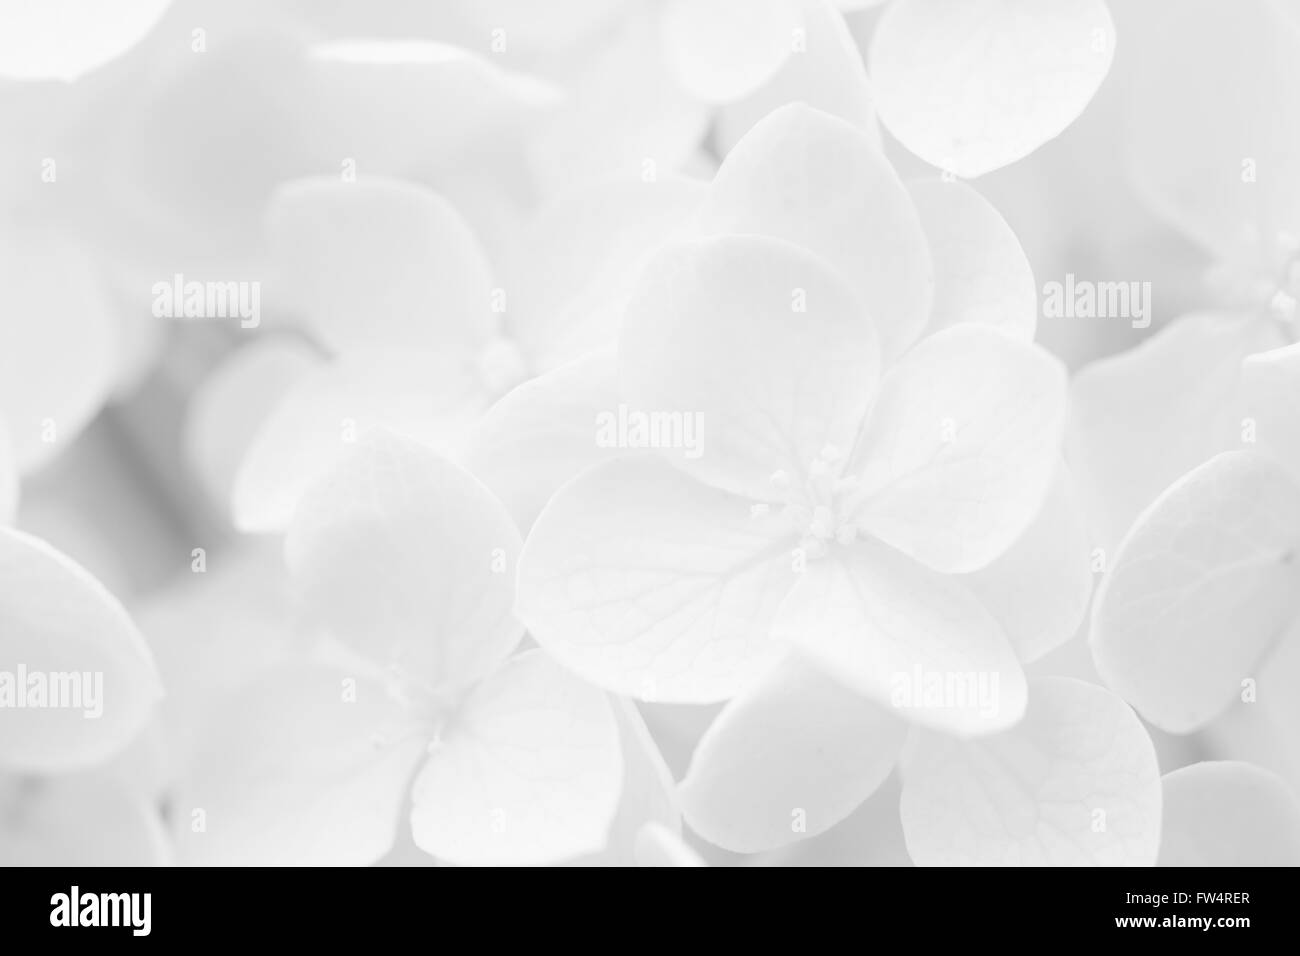 Hydrangea, Hortensia, blurred for background or template - Stock Image